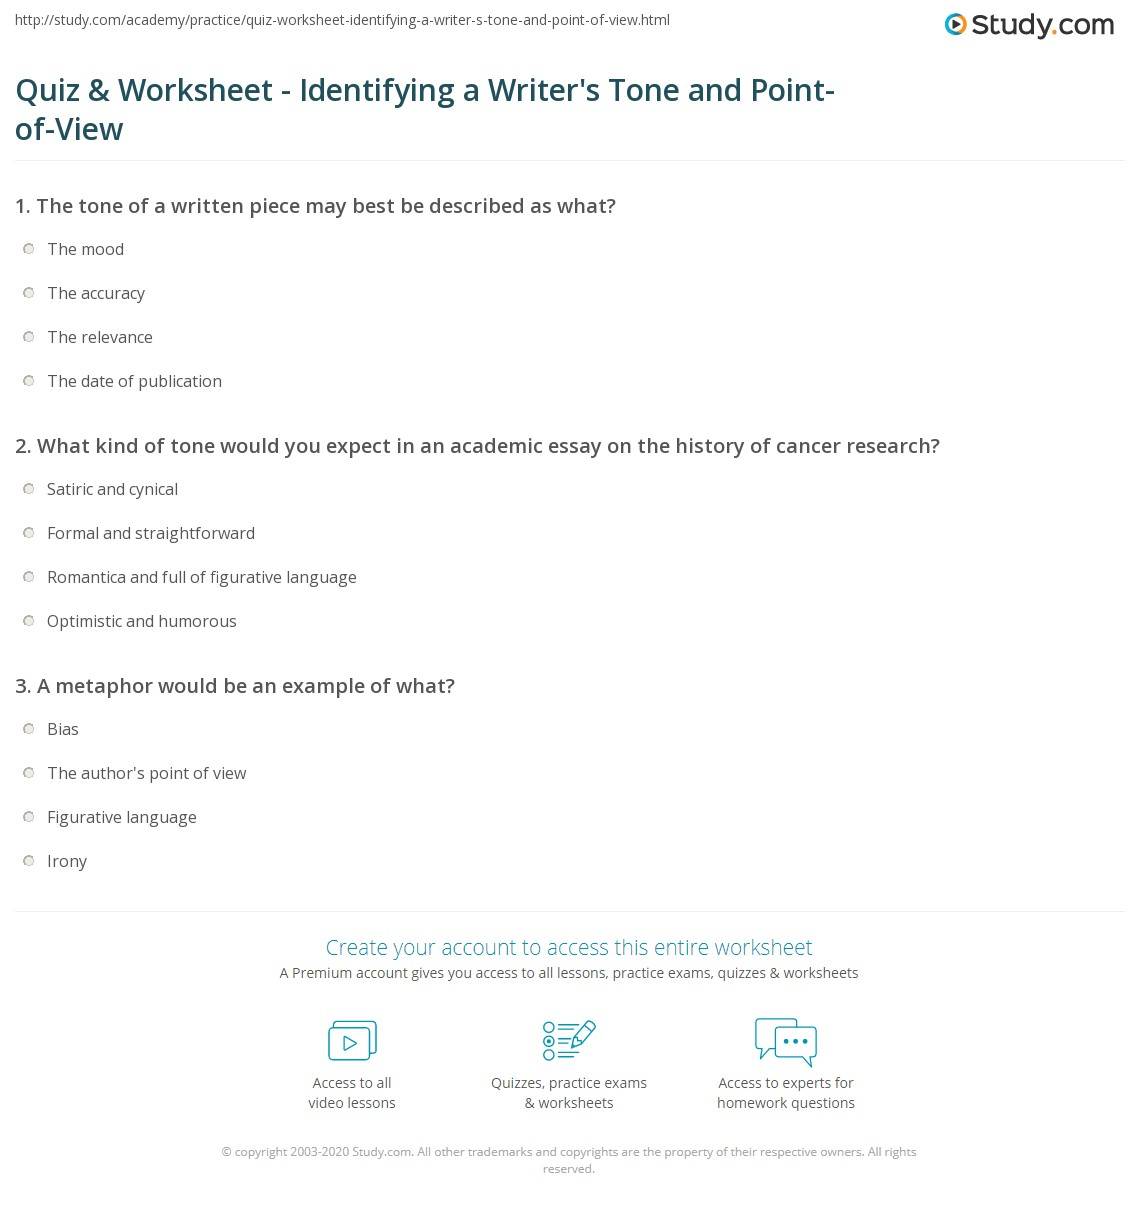 quiz worksheet identifying a writer s tone and point of view what kind of tone would you expect in an academic essay on the history of cancer research